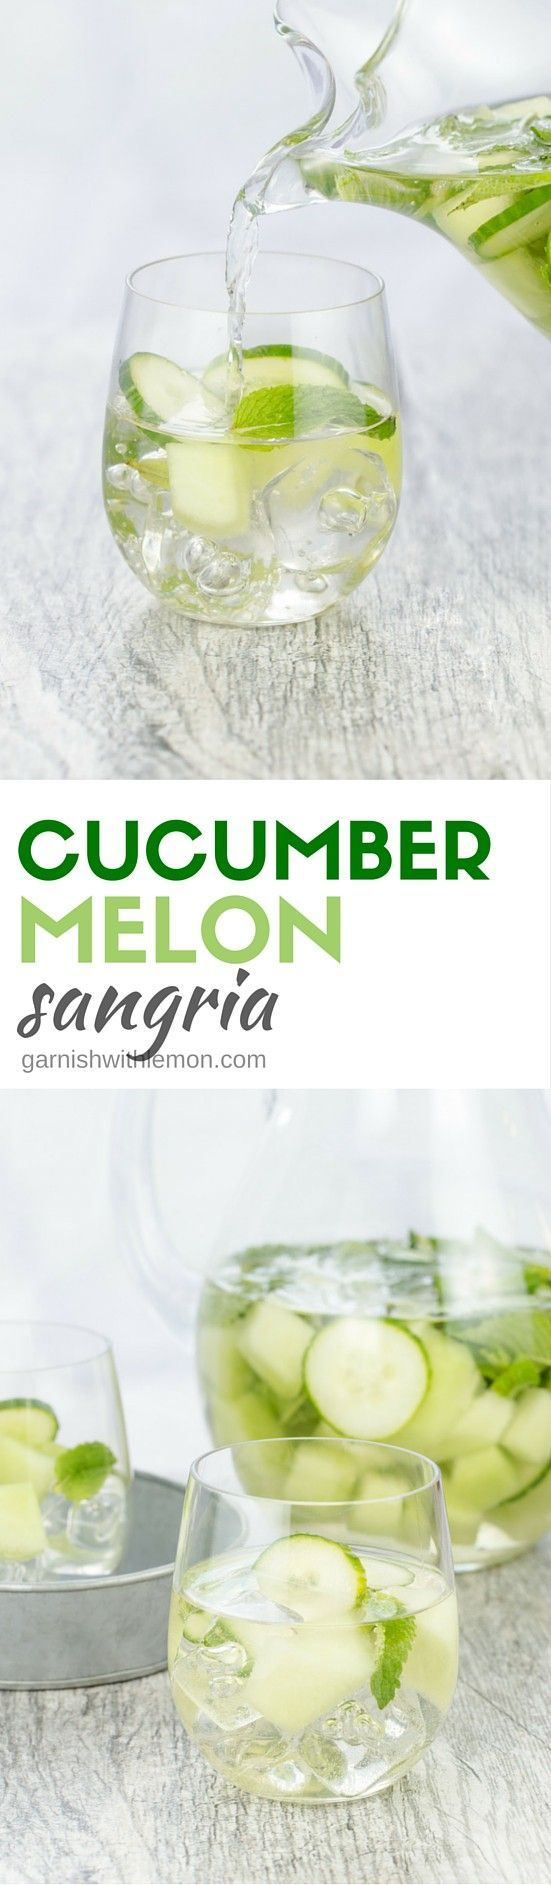 This Cucumber Melon Sangria is one of our favorite white sangrias because it is so light and refreshing. Plus it's made in advance - perfect for parties!